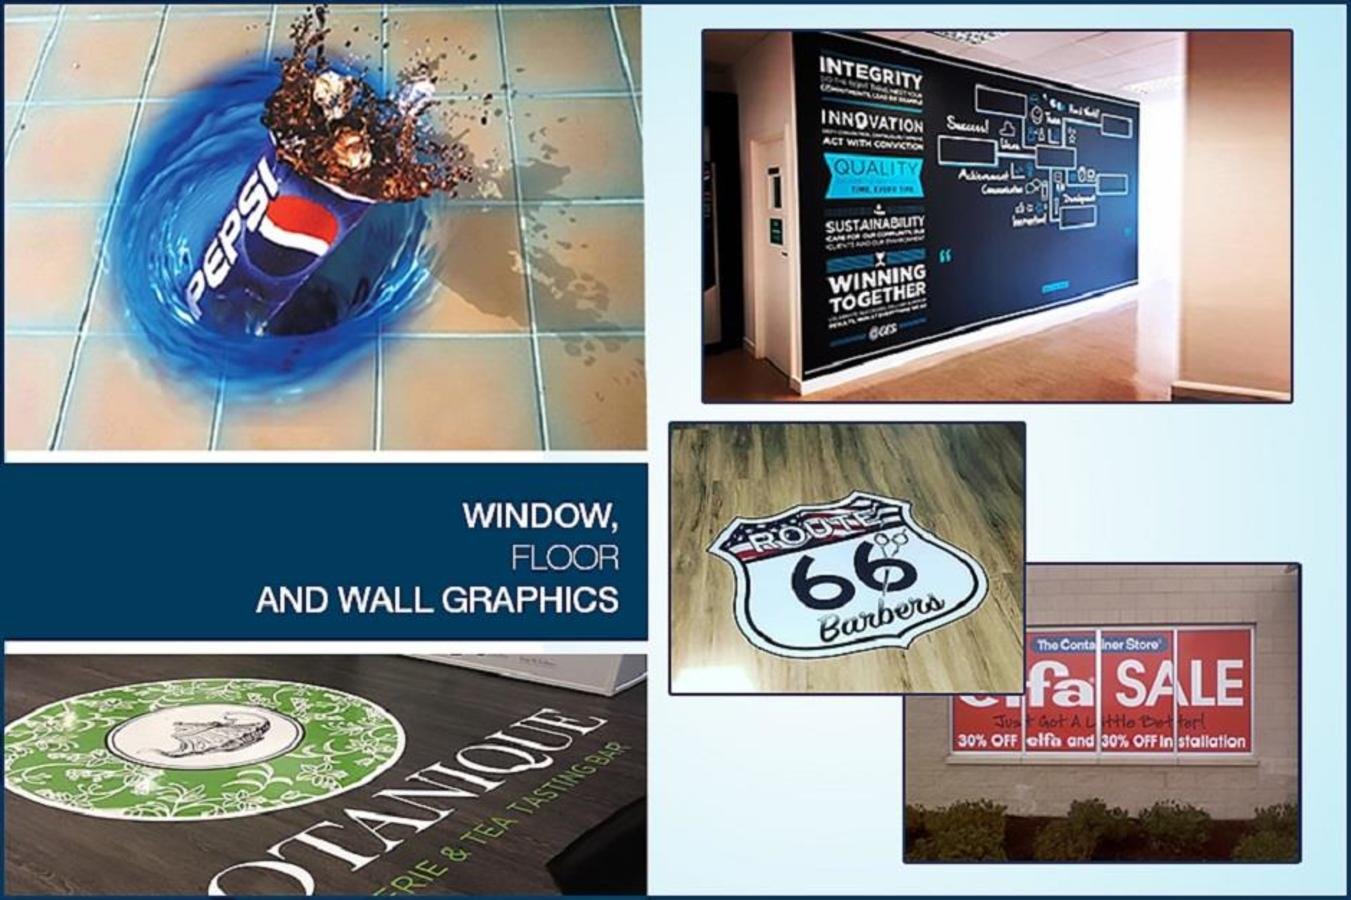 Window, Floor and Wall Graphics